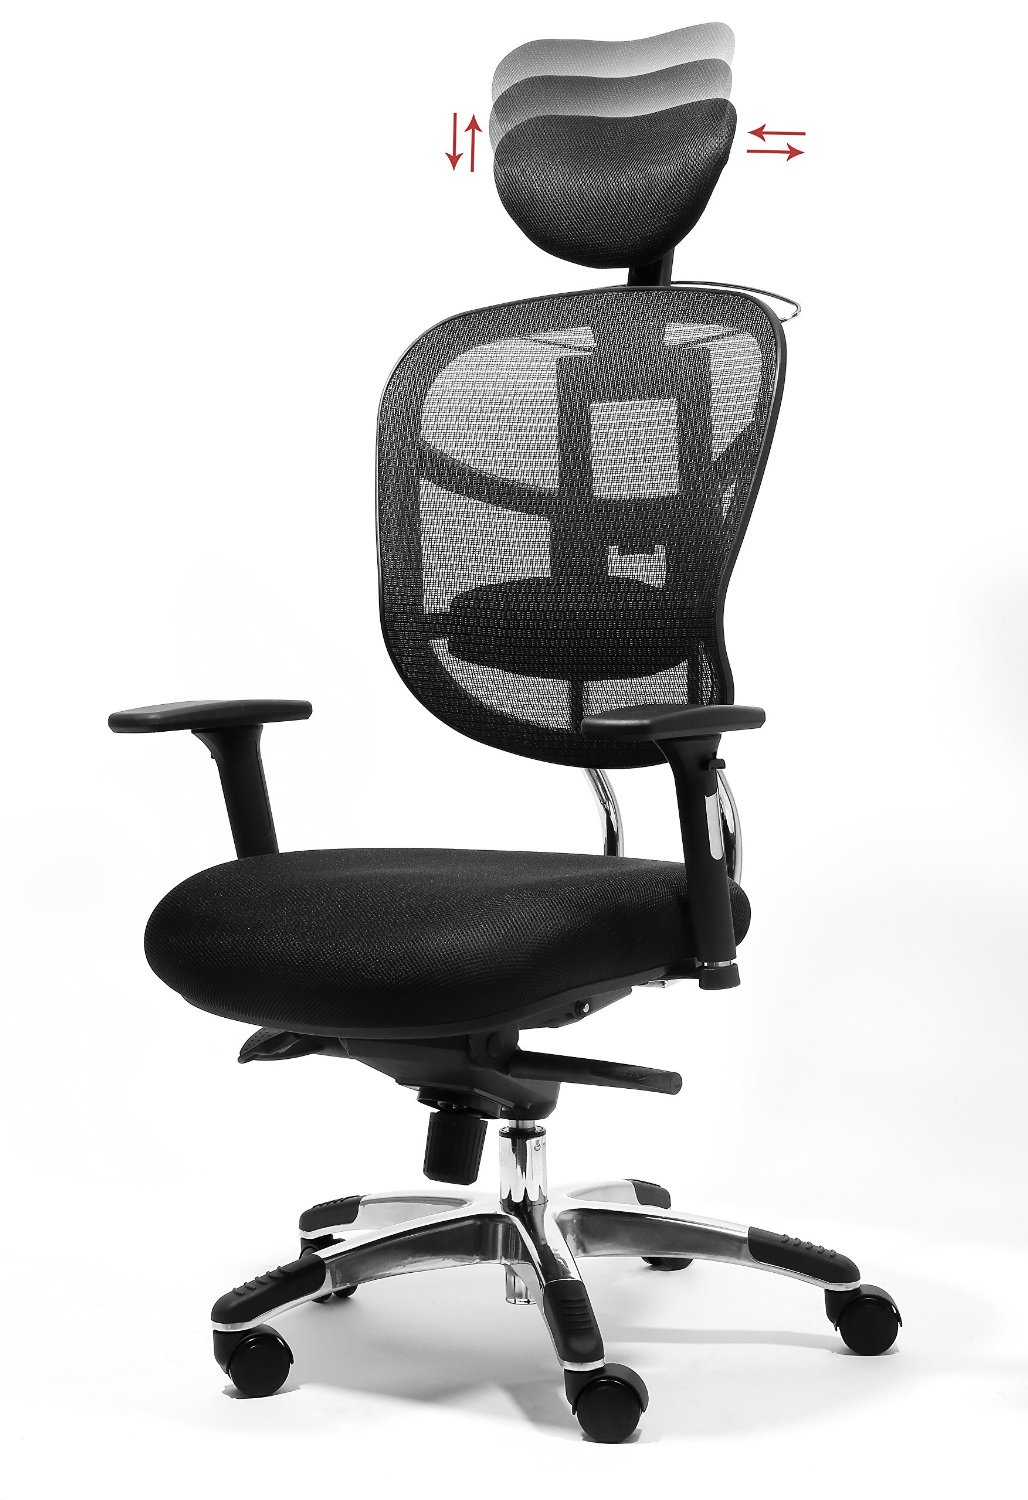 OFFICE FACTOR Ergonomic Chair, Managers High Back Mesh Chair, Adjustable Height, Headrest, Arms, Seat Slider, Smooth Rolling Casters for Office Floor or Carpet